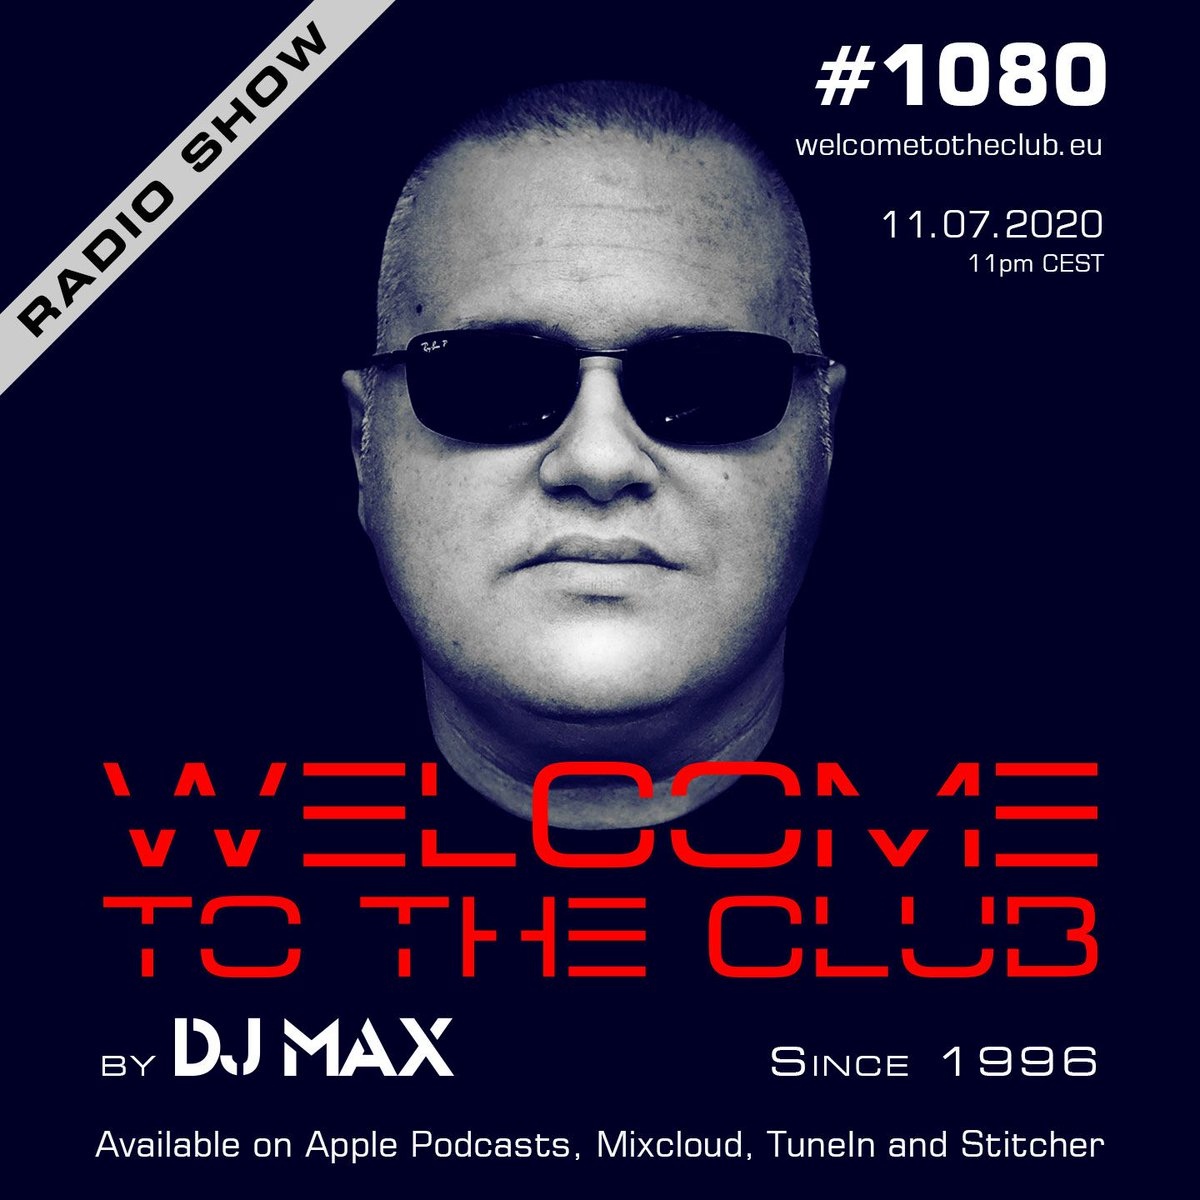 check out my Welcome To The Club #radioshow #1080 | premiered last Saturday Link:   #welcometotheclub  #djmax #electronicmusic #house #techhouse #clubbing #djlife #dj #radio #producer #croatia #ibiza #amsterdam #italy #uk #usa